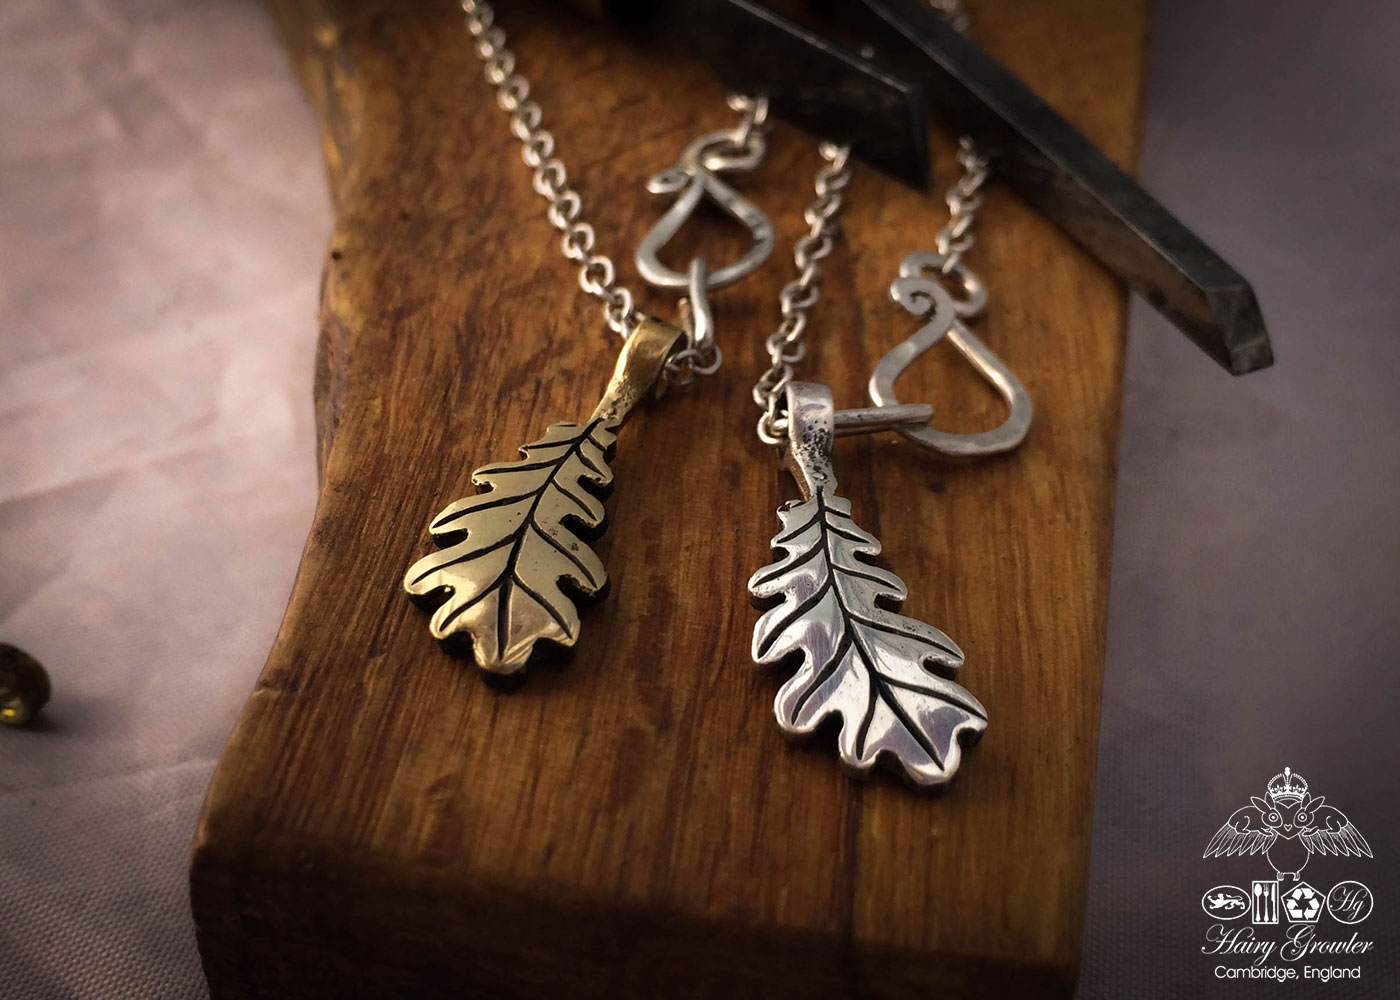 Oak leaf jewellery - handmade and recycled silver and bronze coins recycled ethically in an independent artisan studio workshop